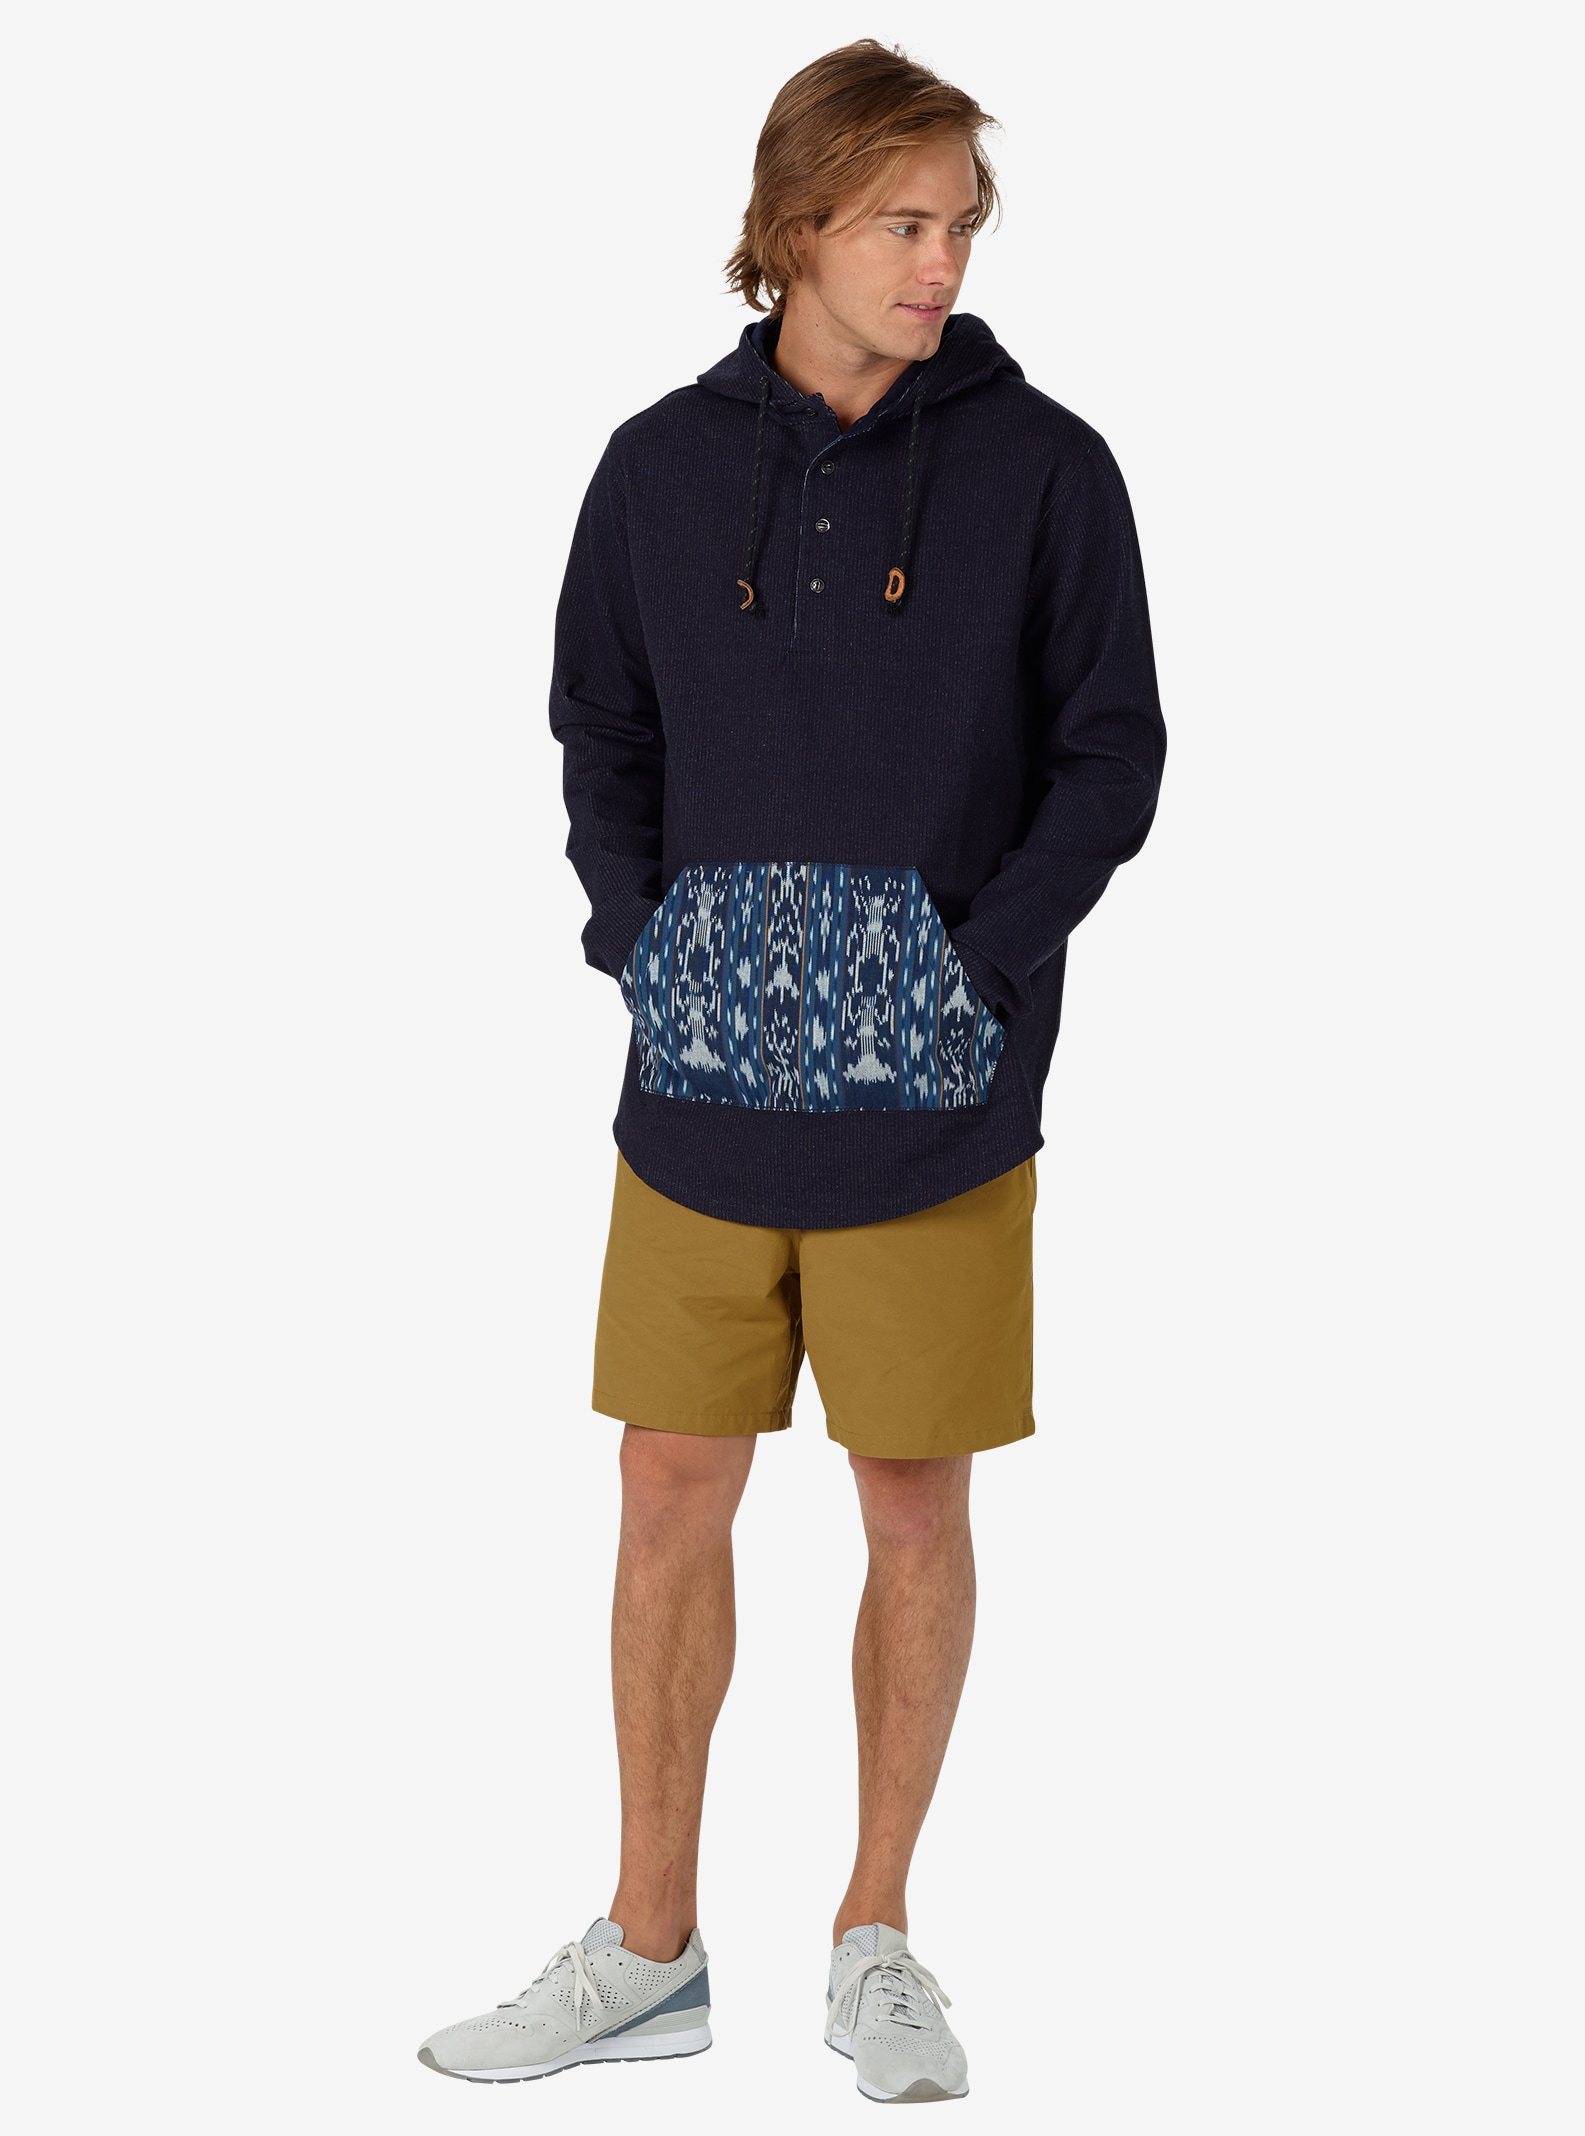 Burton Baja Pullover shown in Indigo